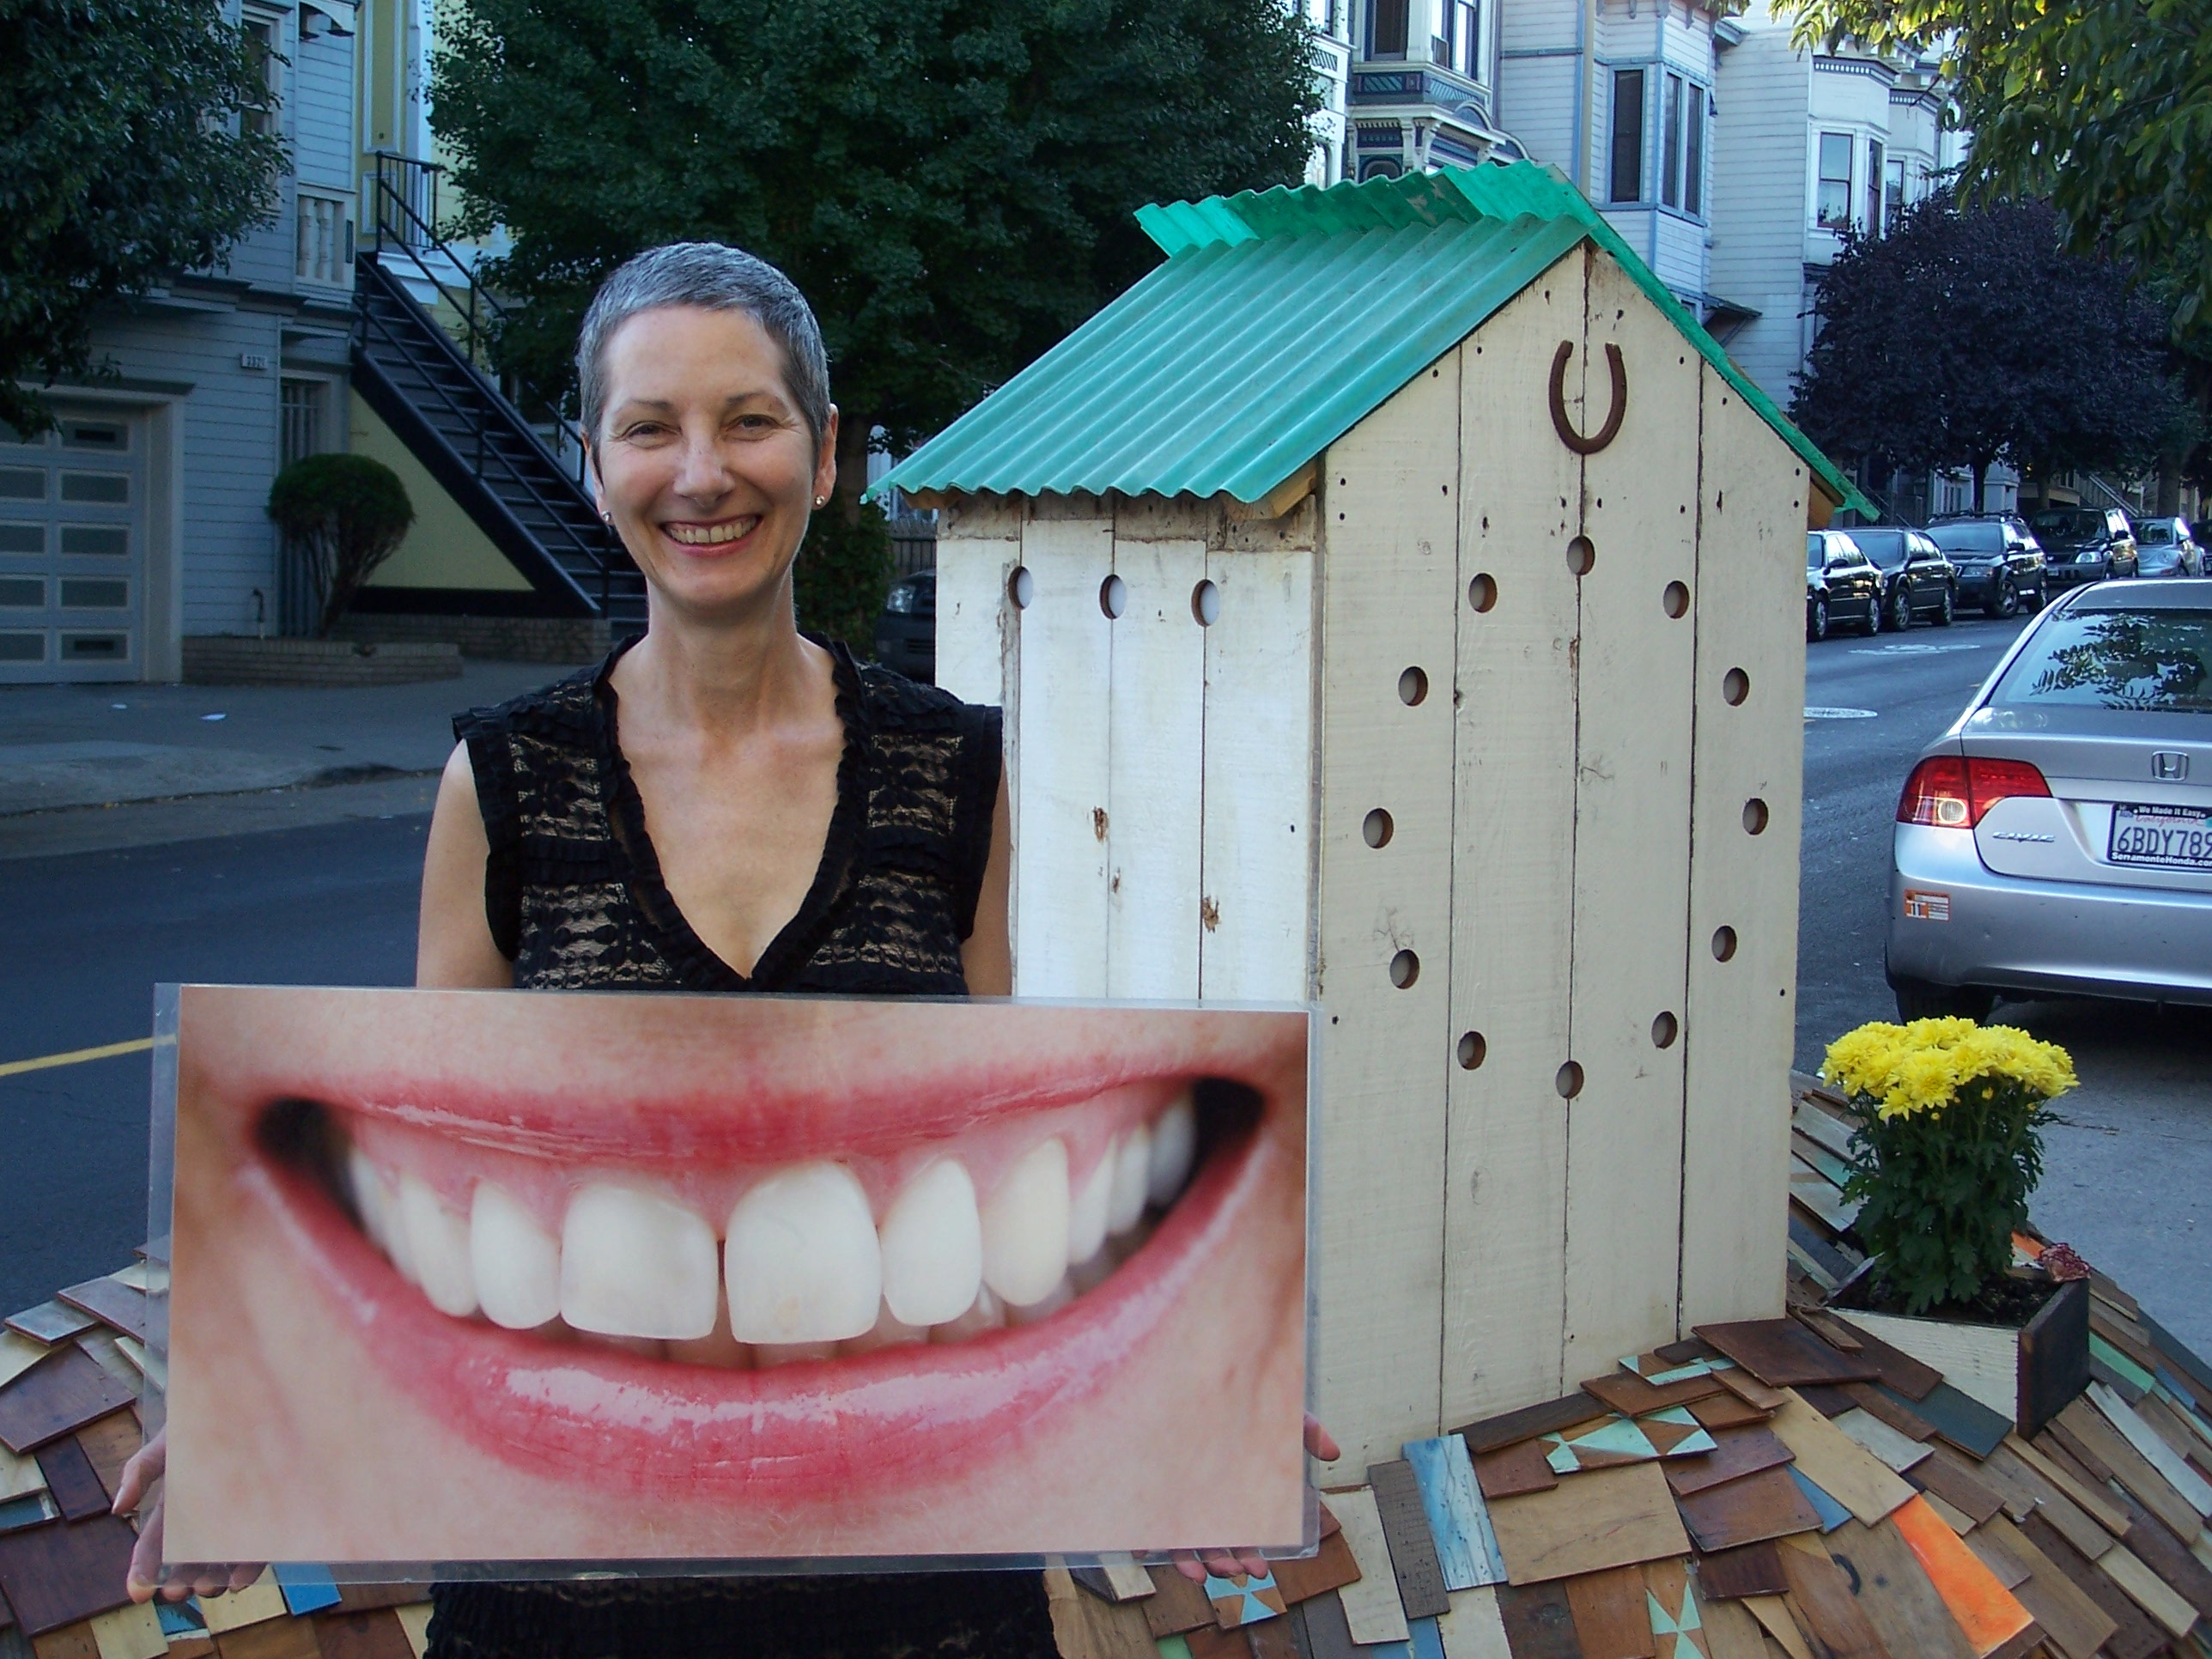 A walk with the Valencia Street smile lady